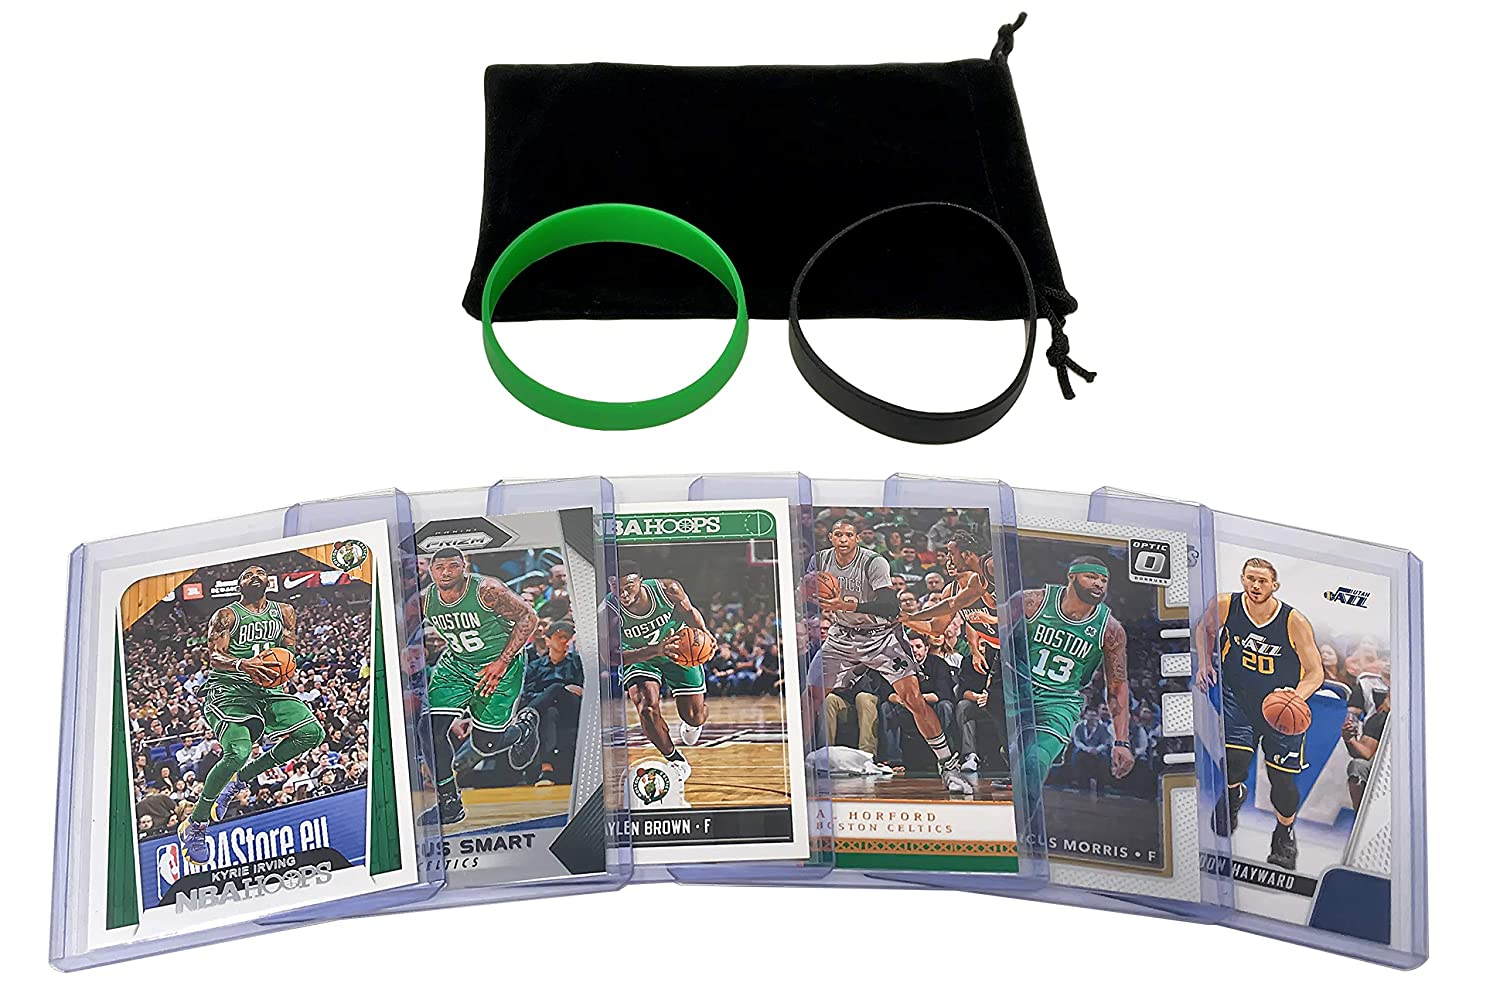 Boston Celtics Cards: Kyrie Irving, Al Horford, Gordon Hayward, Jaylen Brown, Marcus Morris, Marcus Smart ASSORTED Basketball Trading Card and Wristbands Bundle Panini Hoops Topps